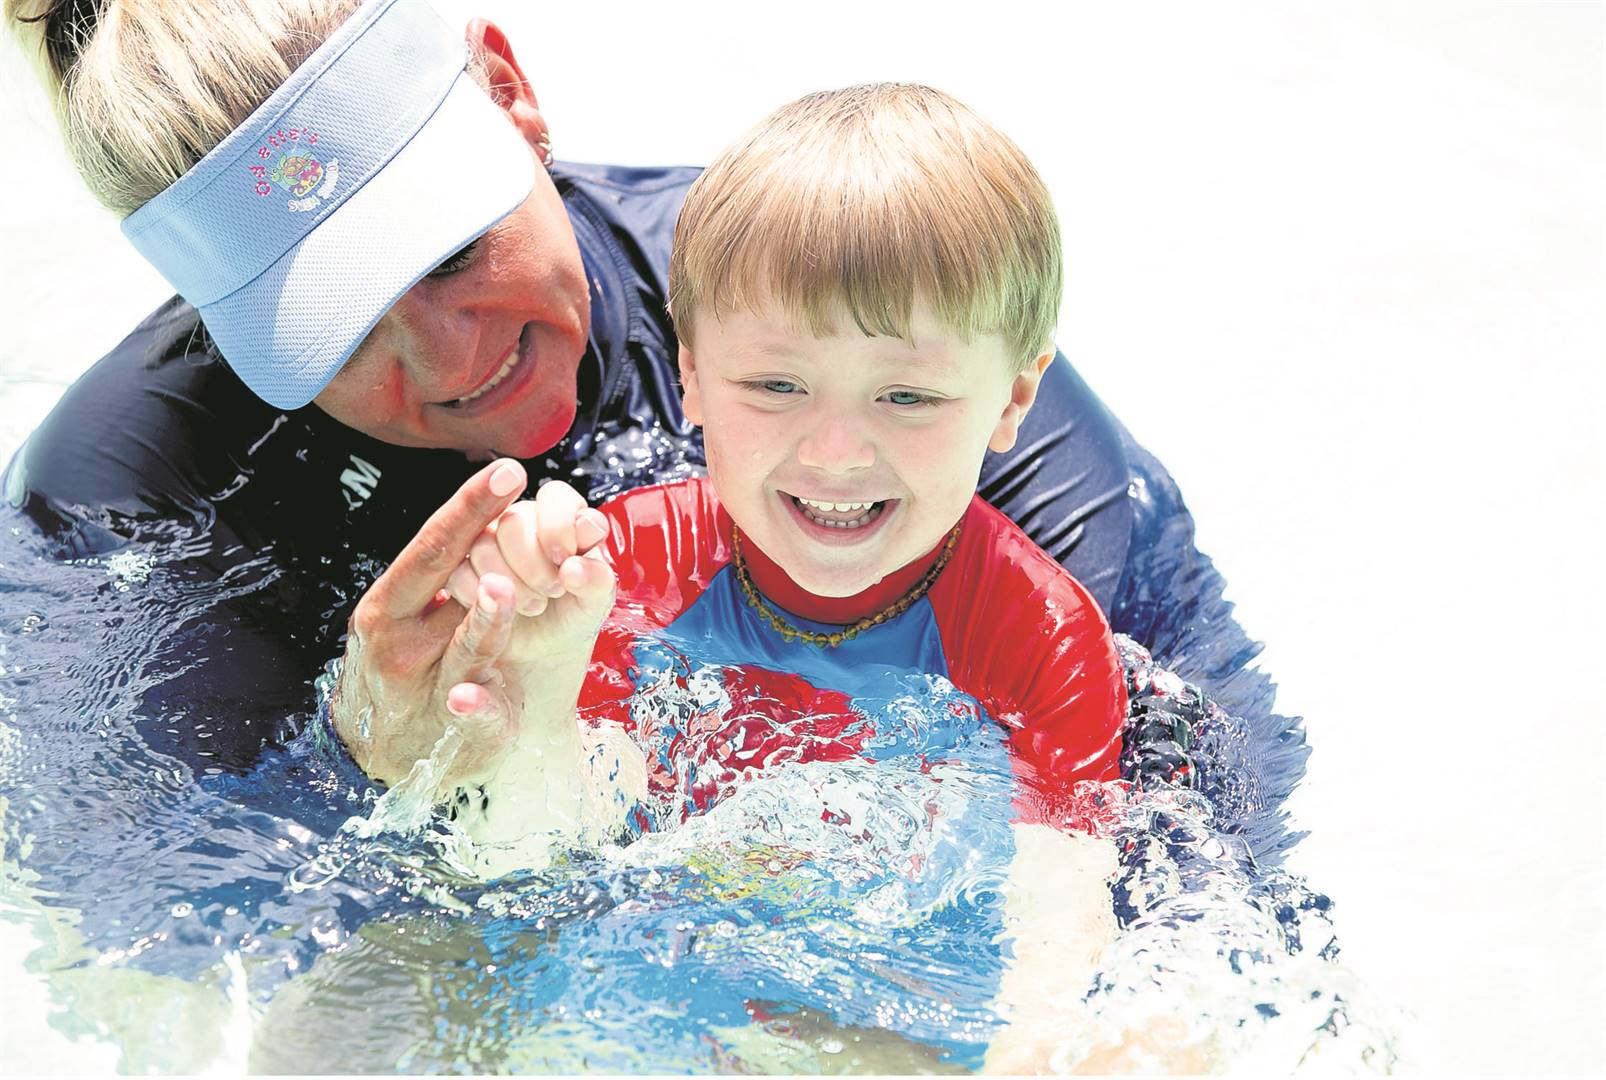 St Charles College has partnered with Seals Swimming Club to heat up their junior pool and has made available a qualified Learn to Swim coach. Pictured, coach Odette van der Merwe is building confident boys in the pool including Tyler Berry.PHOTO: SAYSHA BAKER